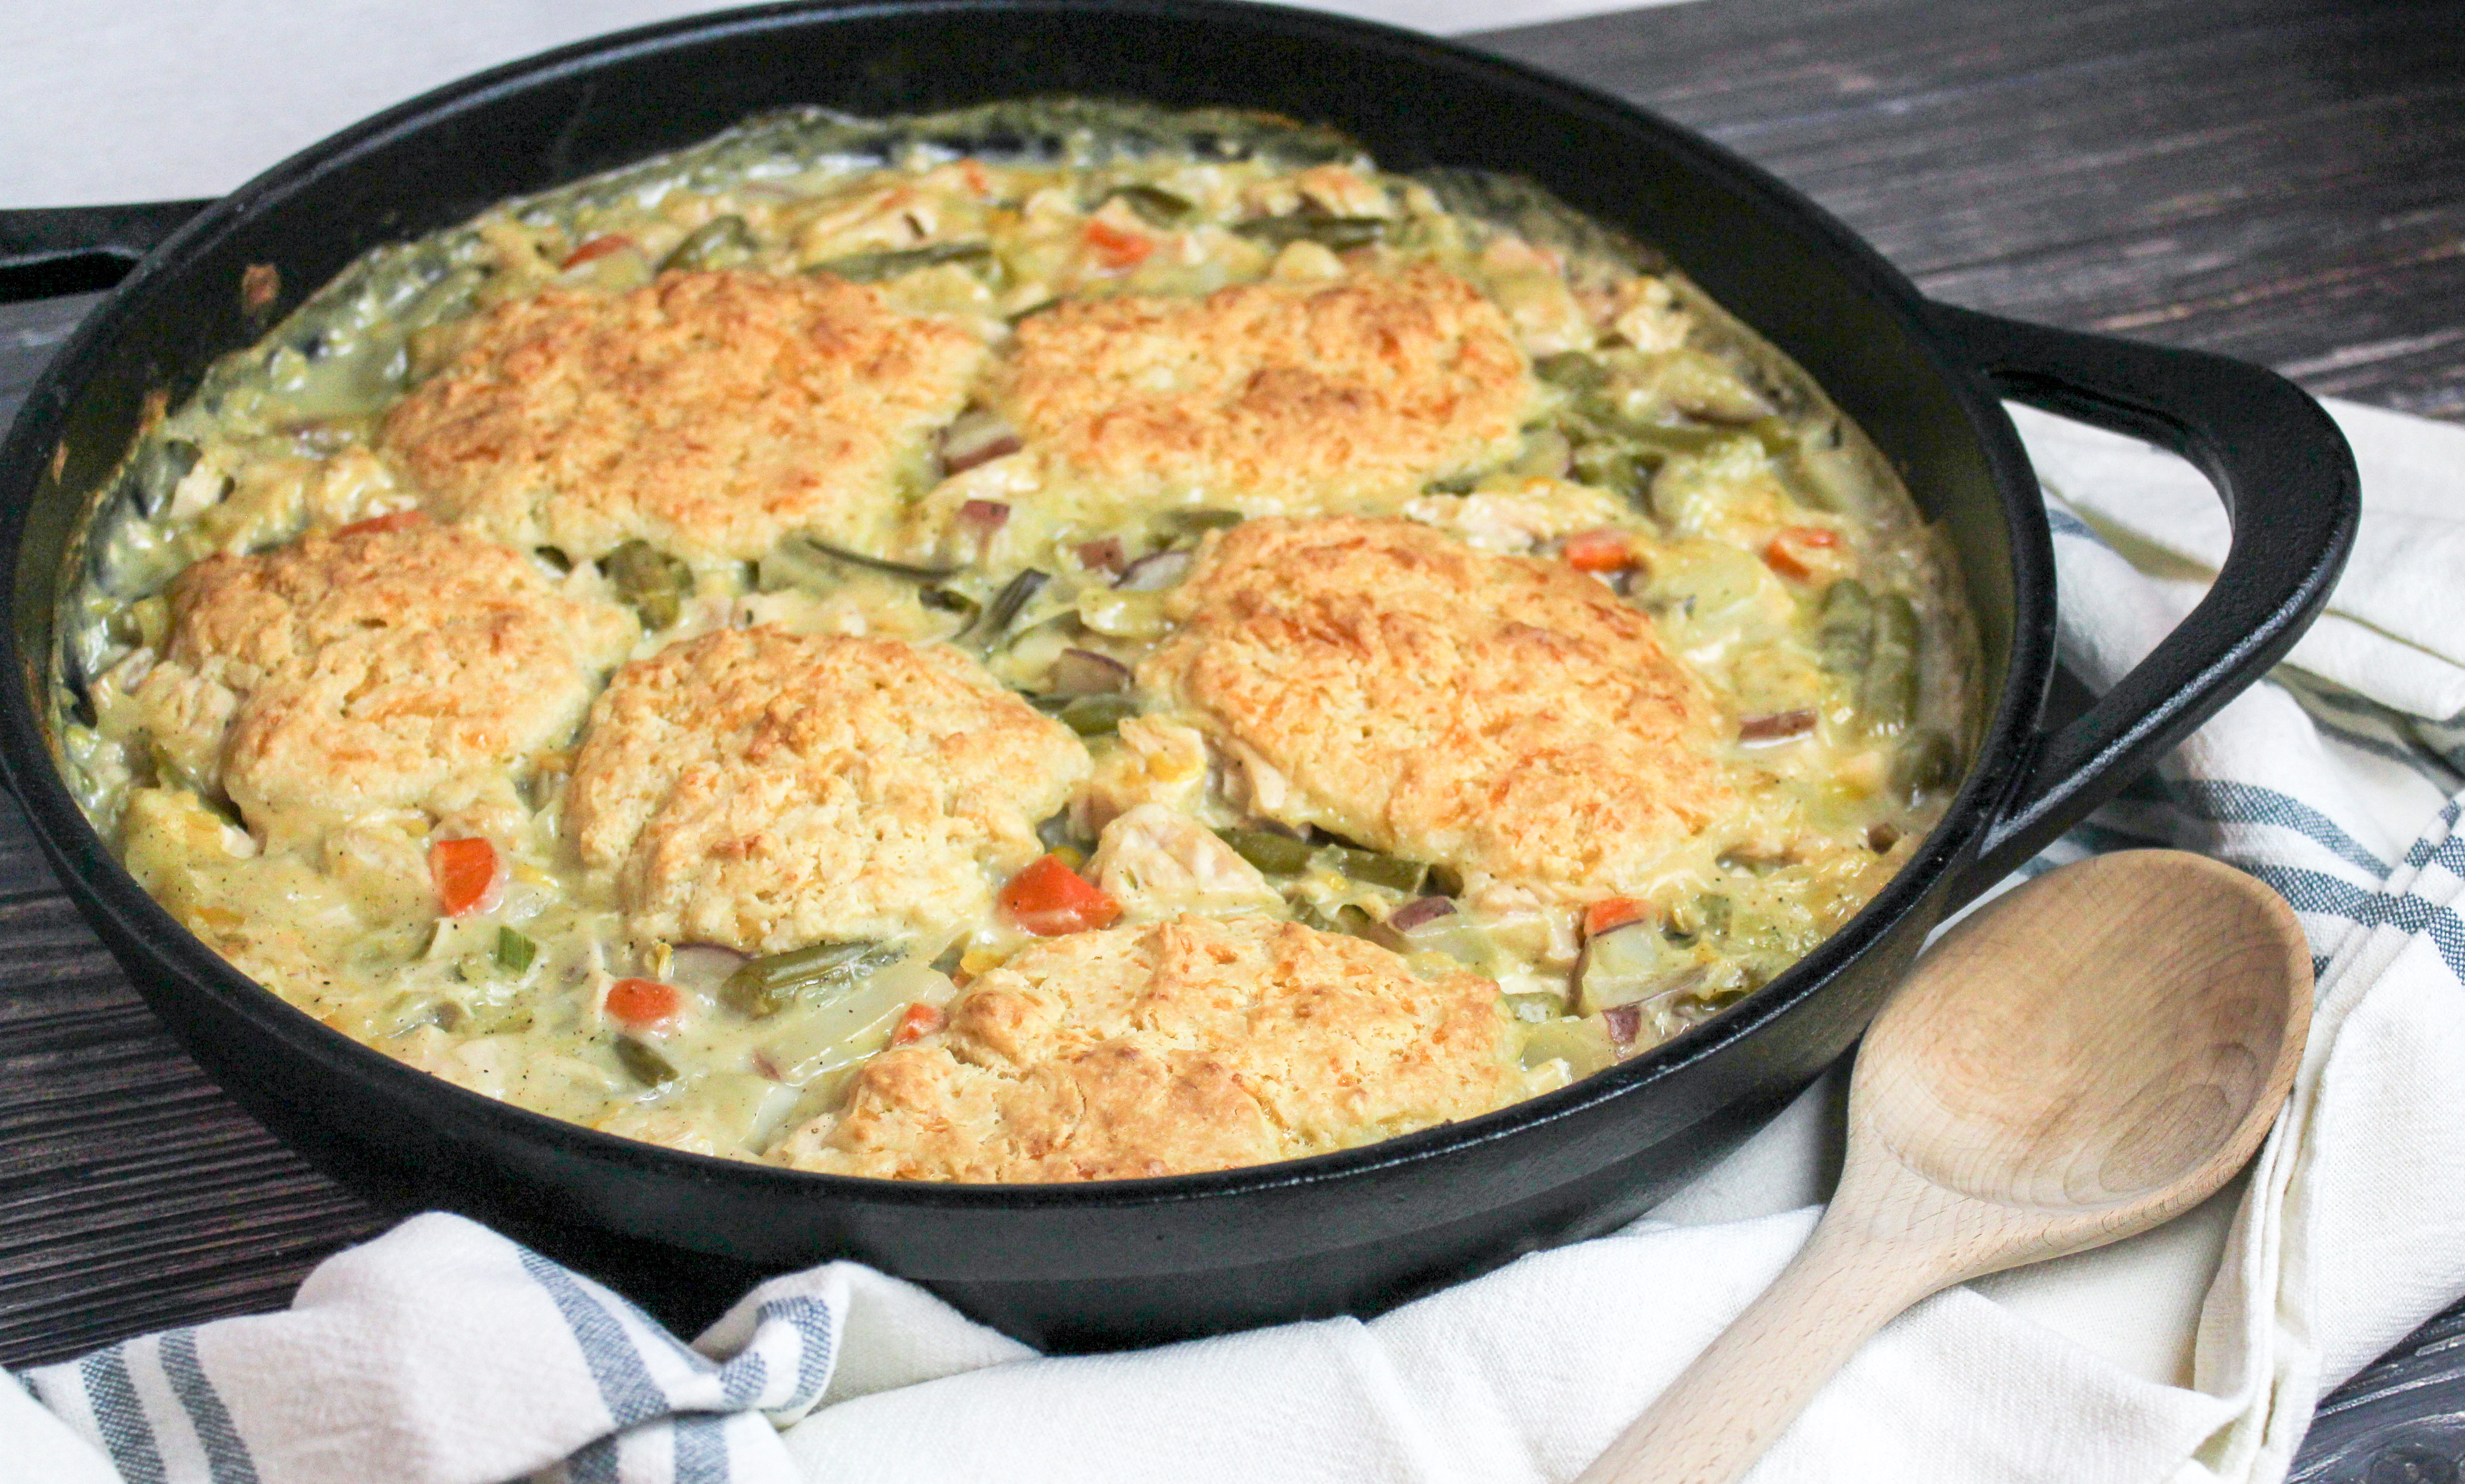 Creamy turkey shredded and baked with biscuits in a cast iron baking dish